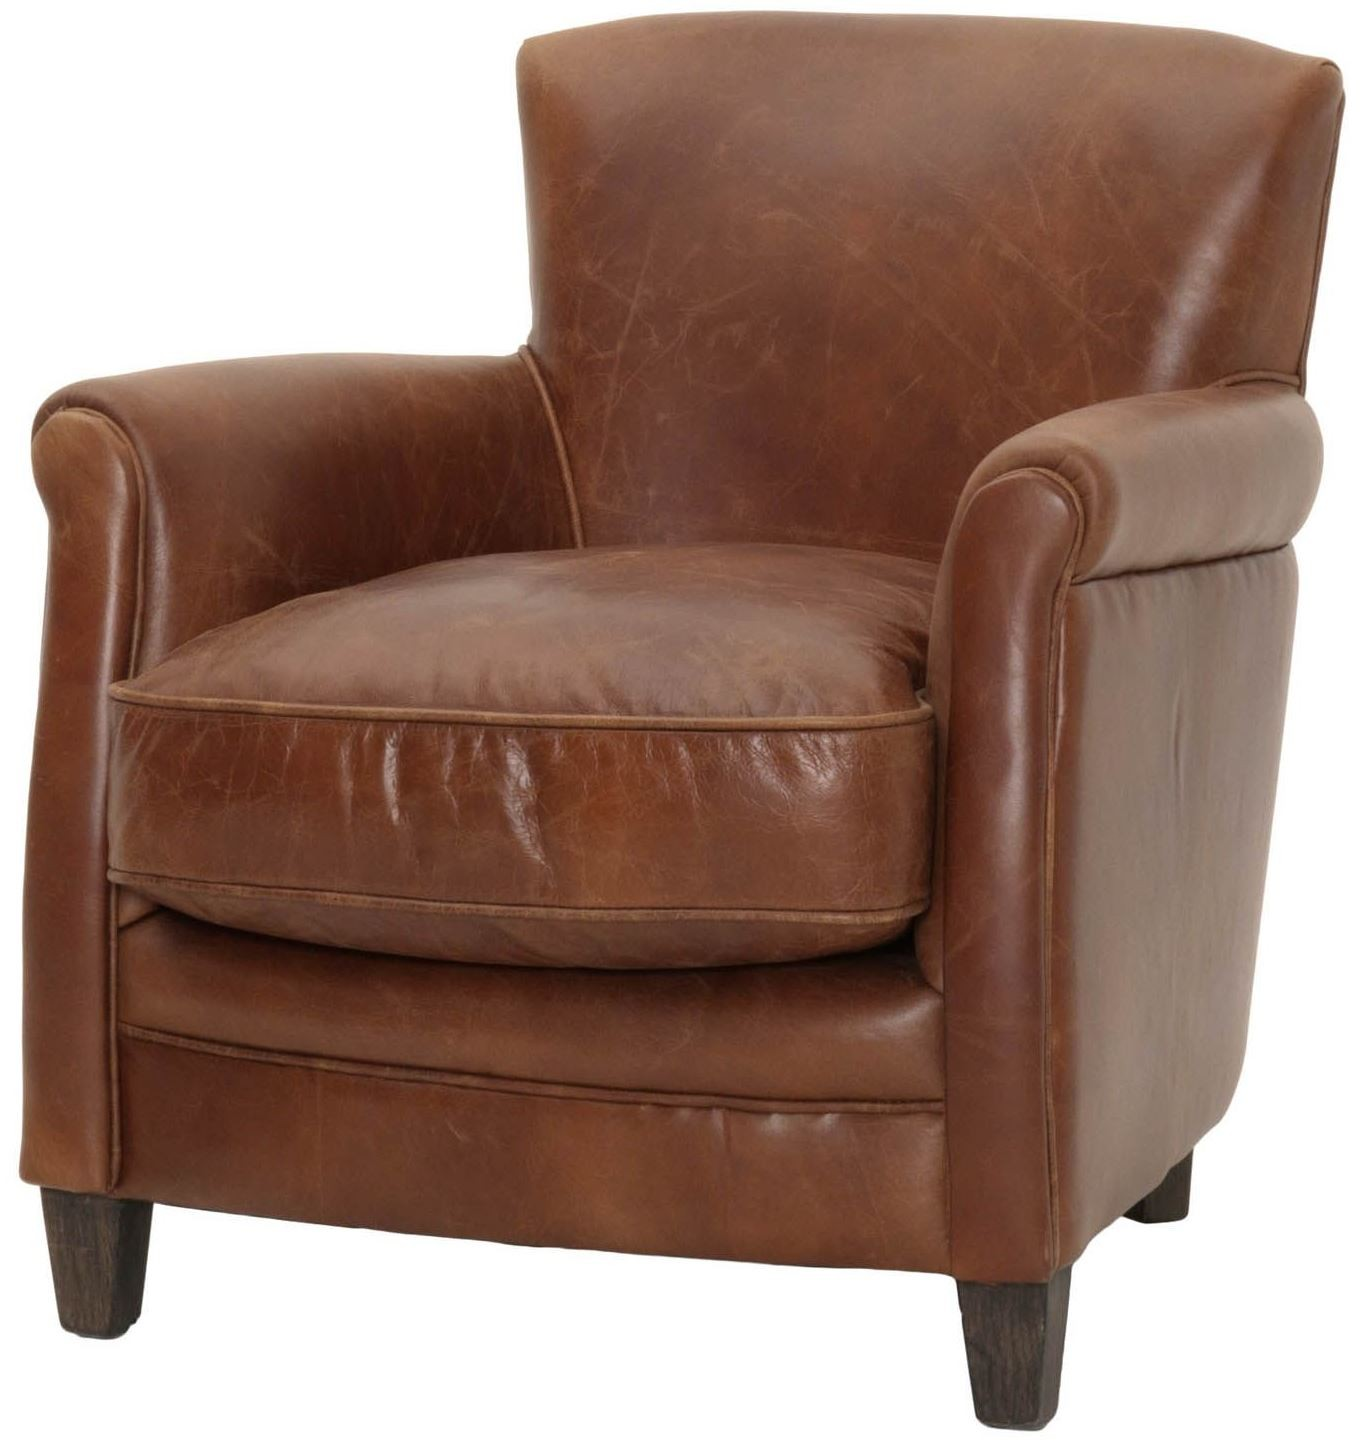 Patina Cafe Marshall Club Chair From Orient Express 8210 Chntant C Coleman Furniture